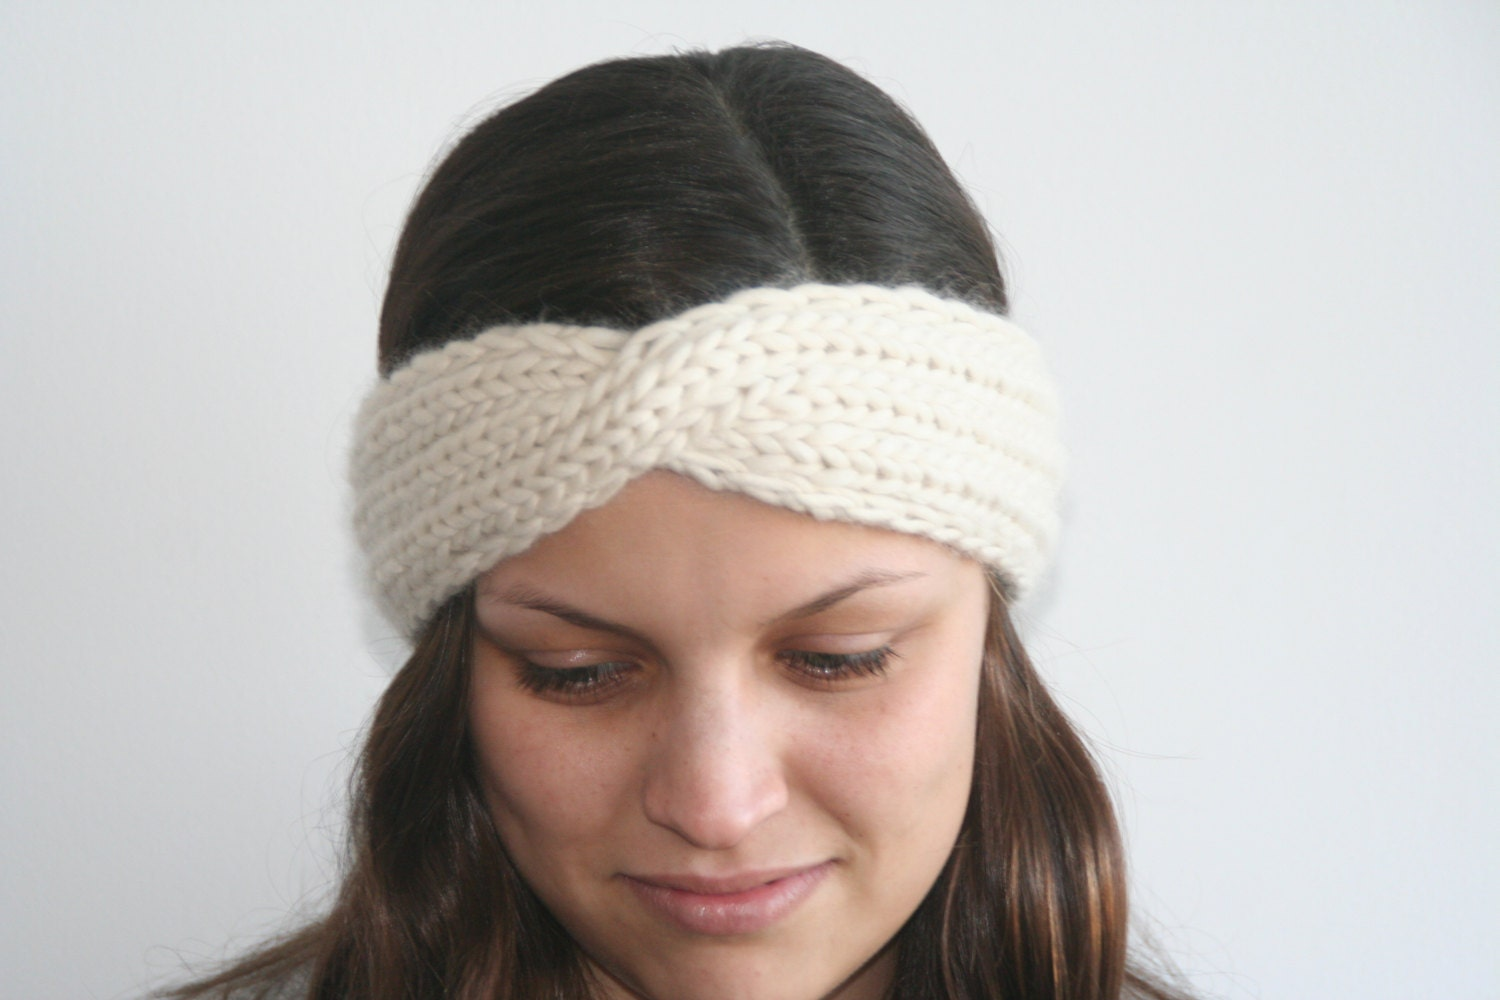 Twisted Headband Knit Pattern : Twisted Turban Headband Knitting Pattern PDF by NellyKnits on Etsy